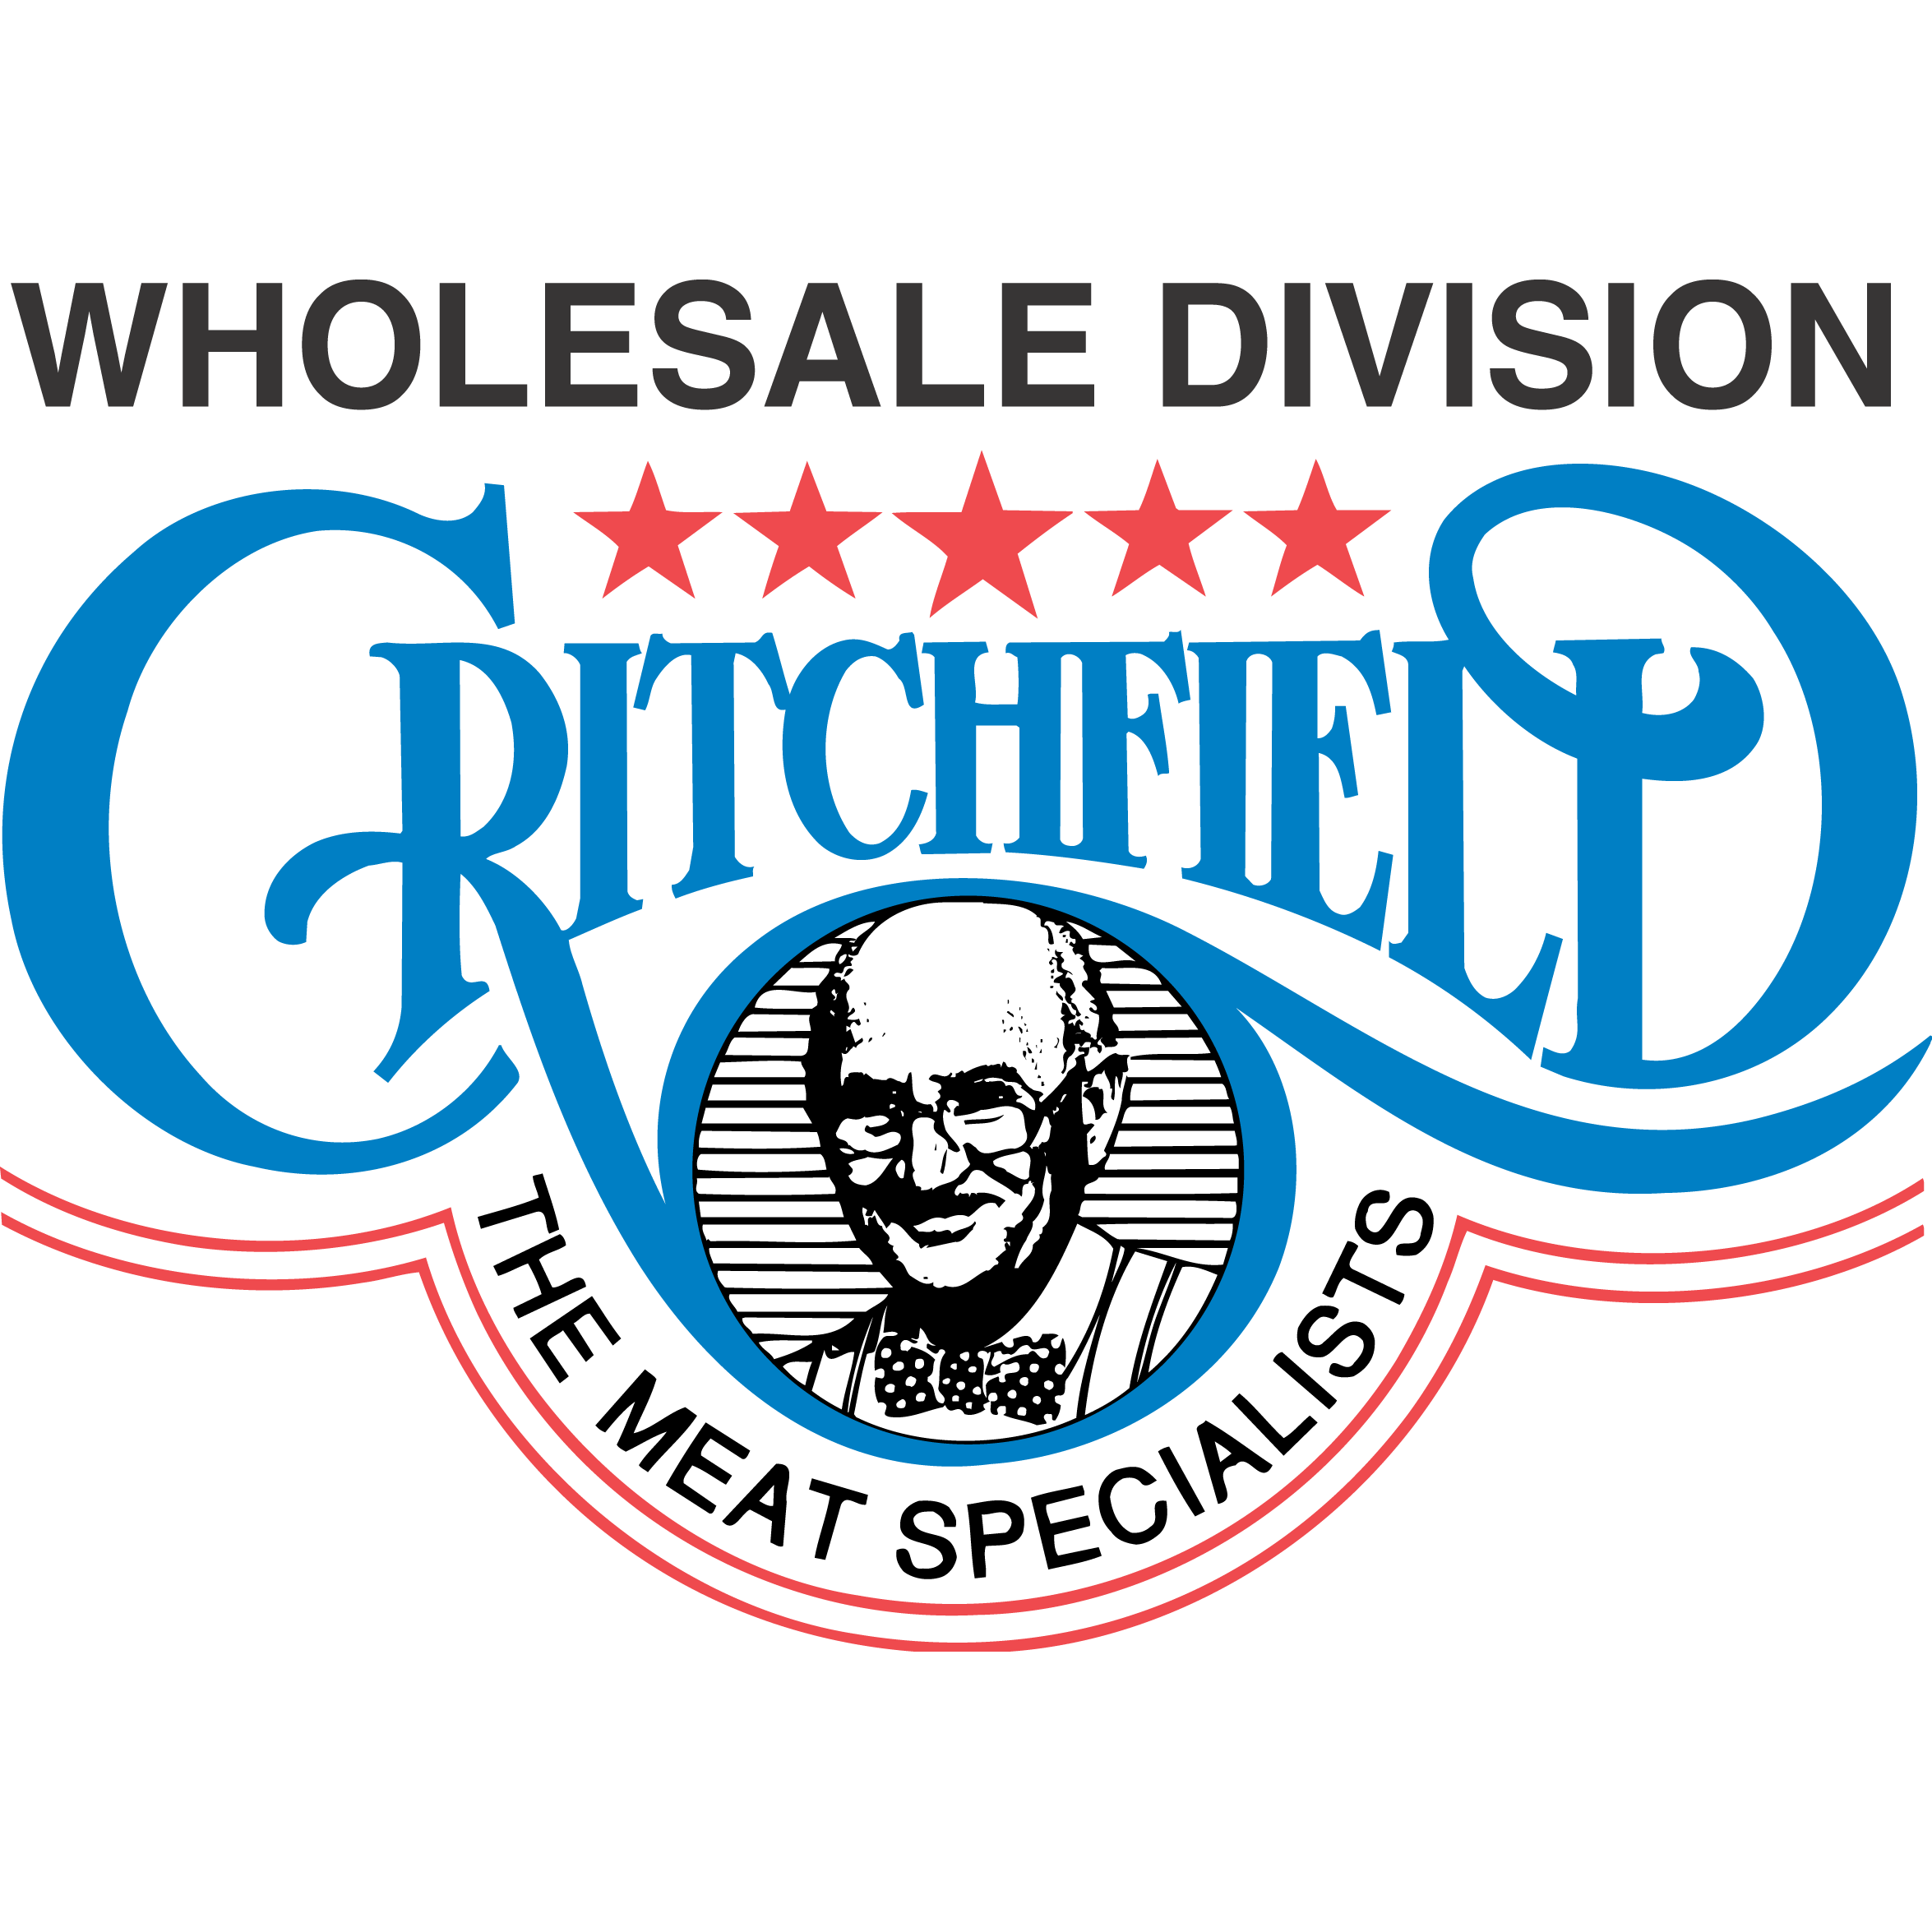 Critchfield Meats Wholesale